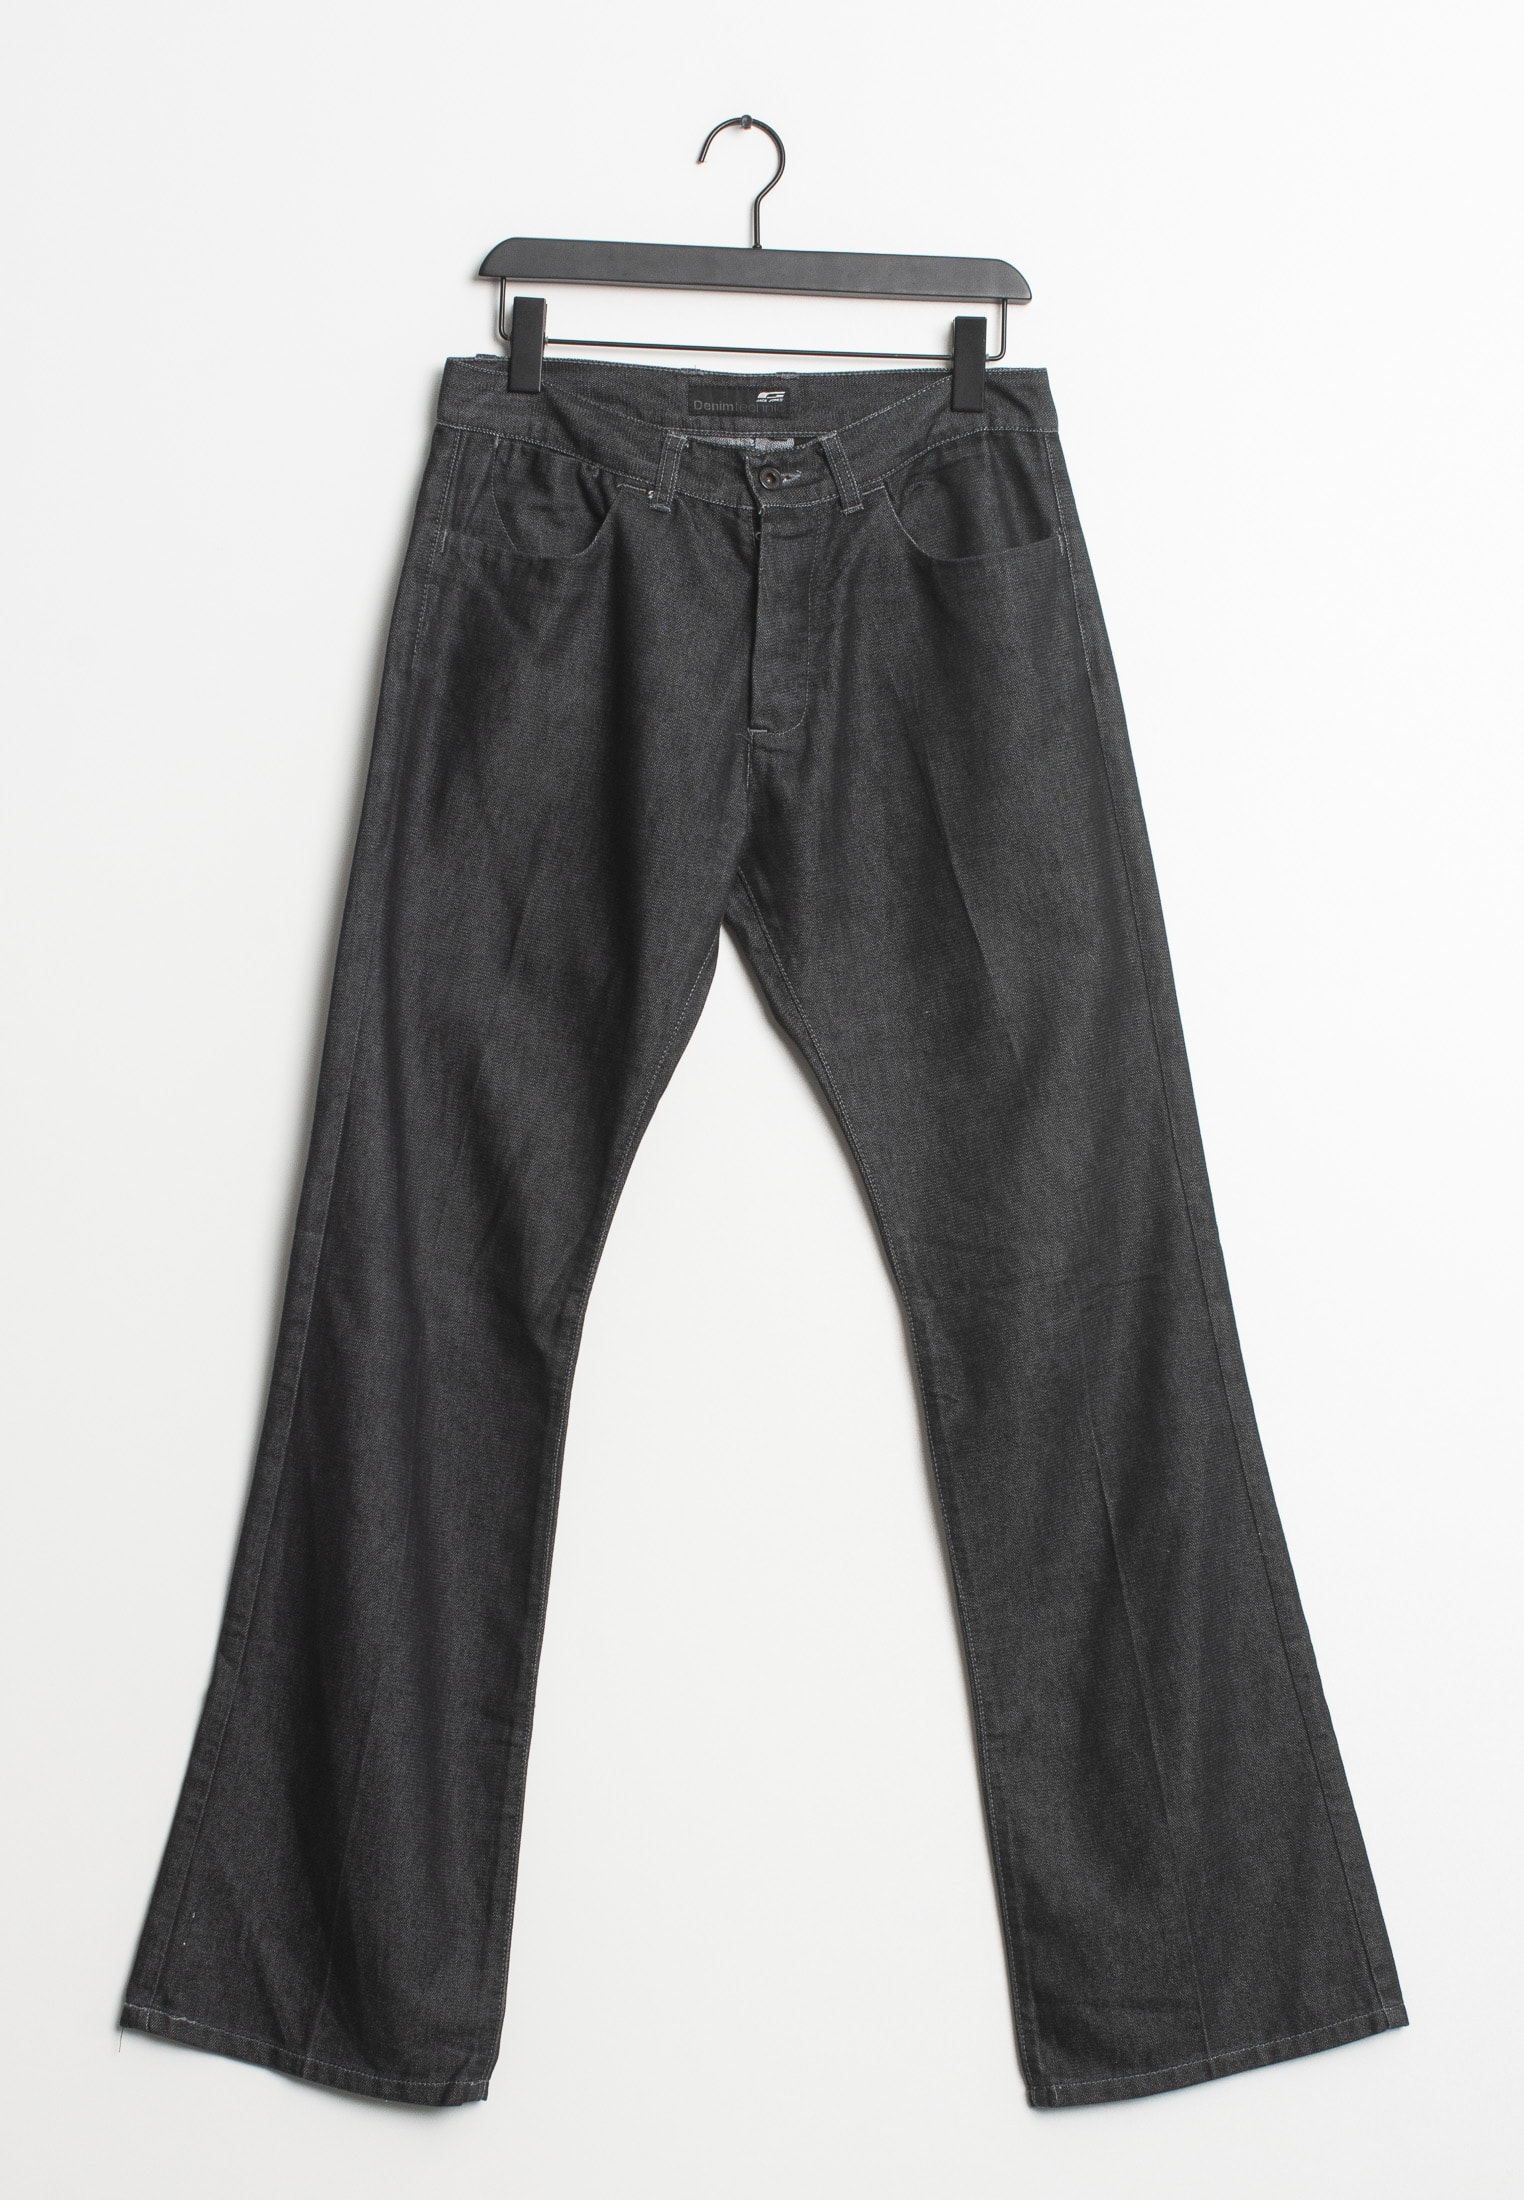 Jack & Jones Jeans Schwarz Gr.36